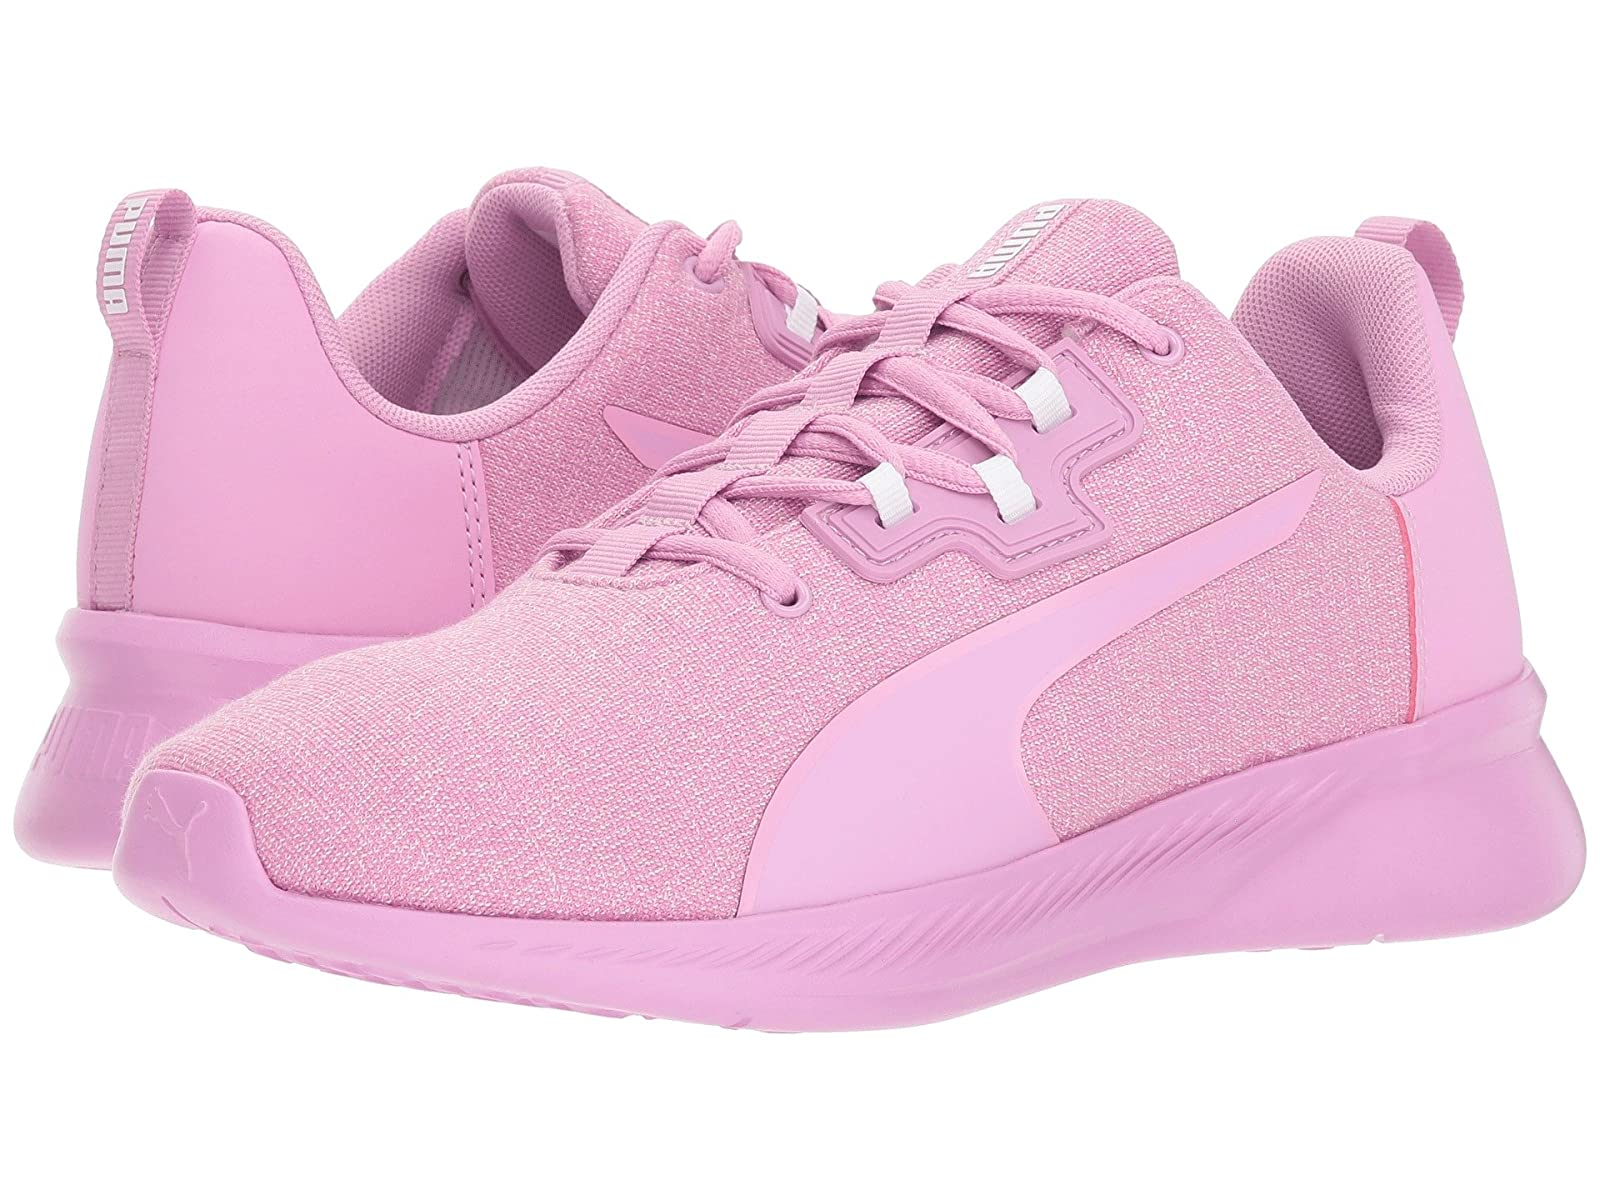 Puma Kids Tishatsu Runner Knit (Big Kid)Atmospheric grades have affordable shoes